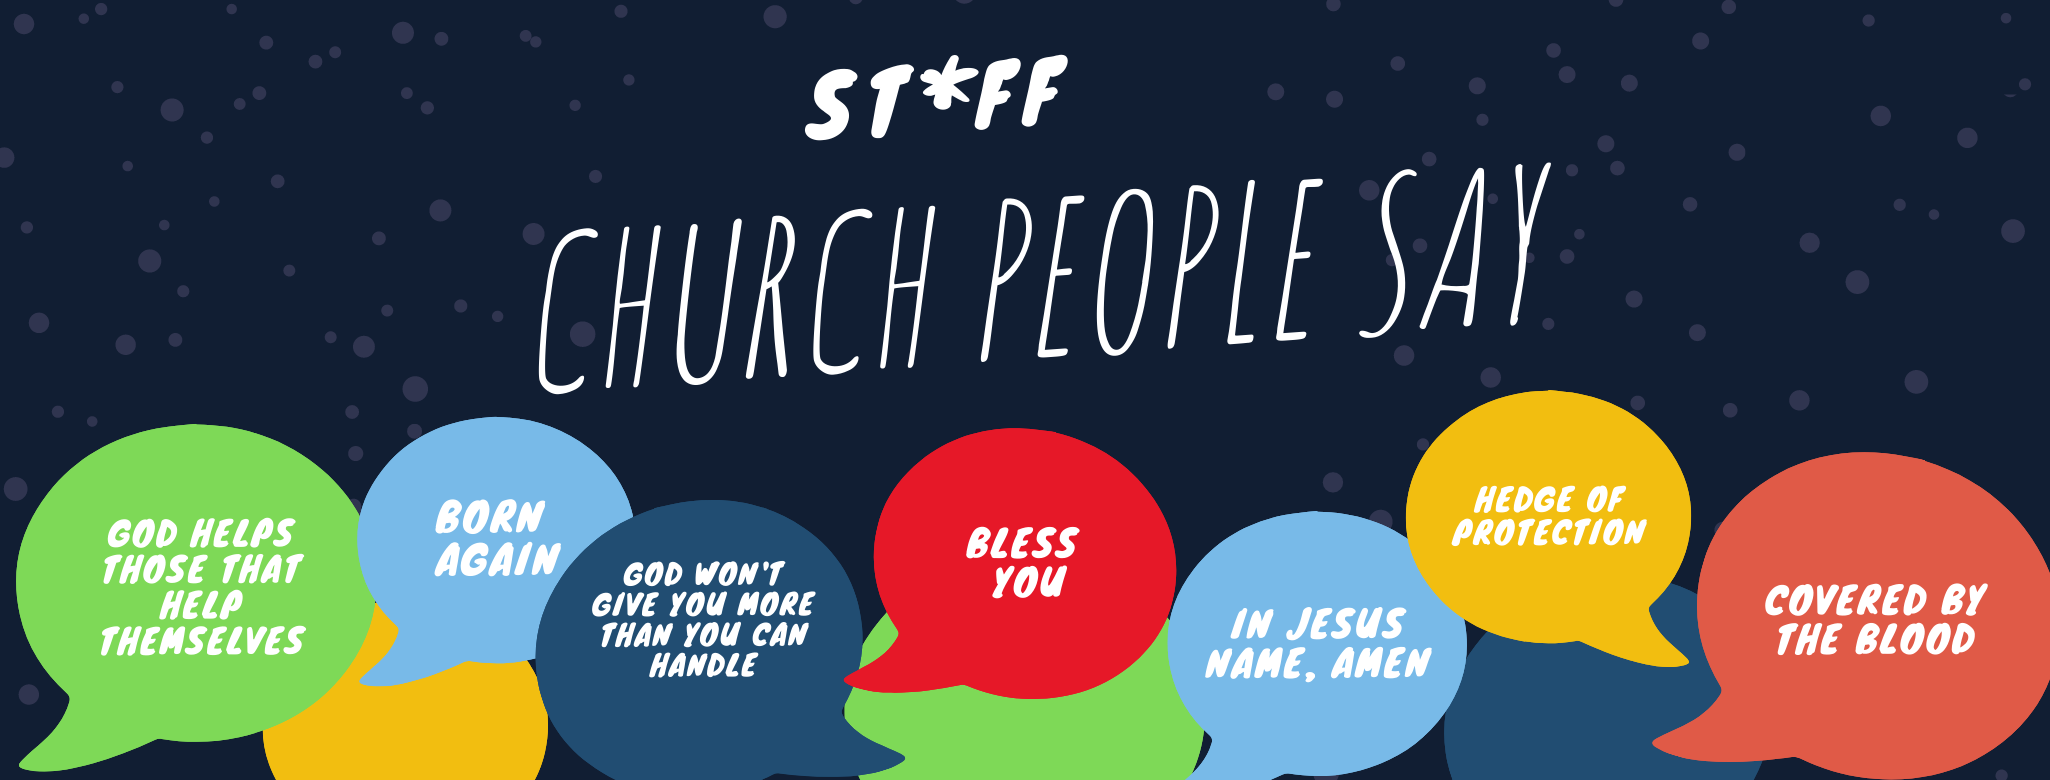 Stuff Church People Say